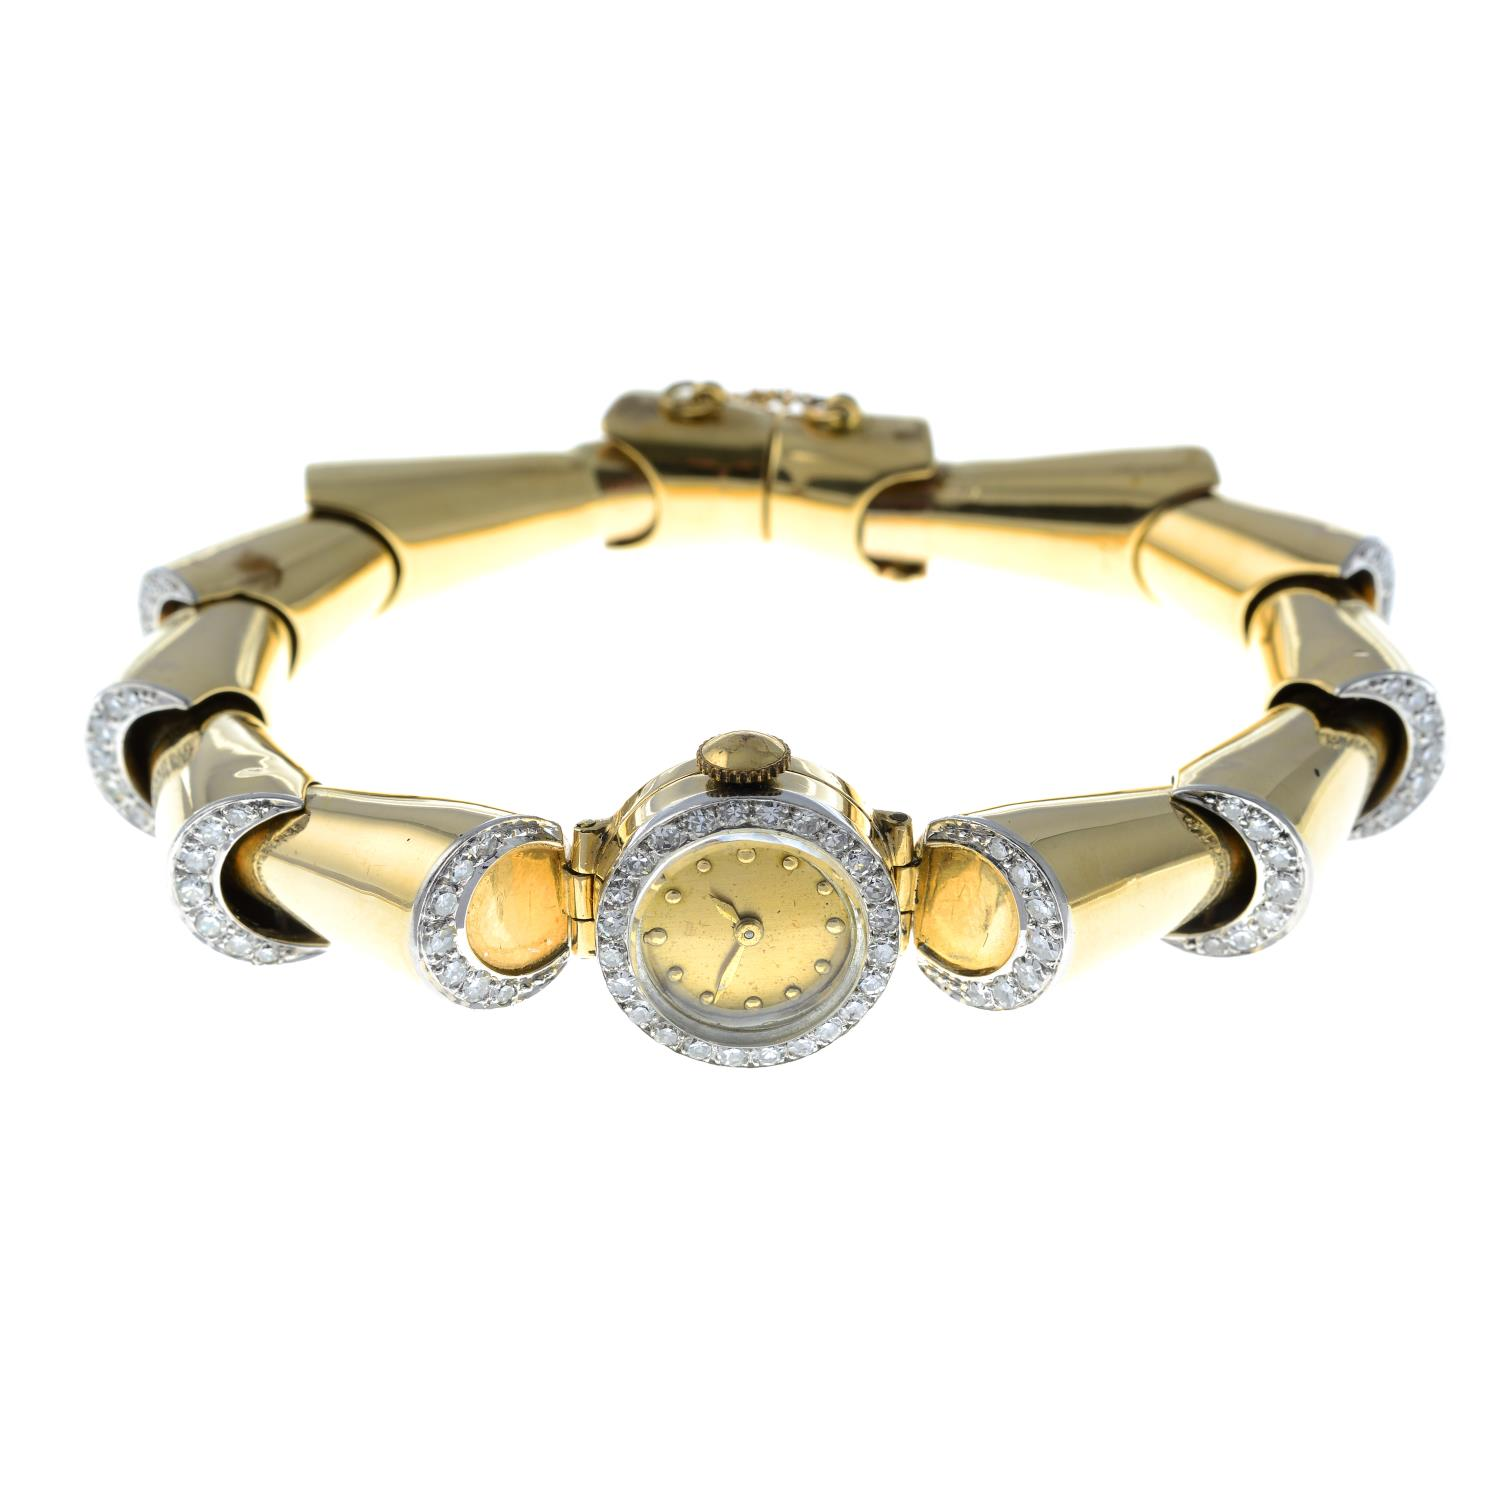 A 1940s gold diamond cocktail watch.Estimated total diamond weight 1.35cts, - Image 5 of 5